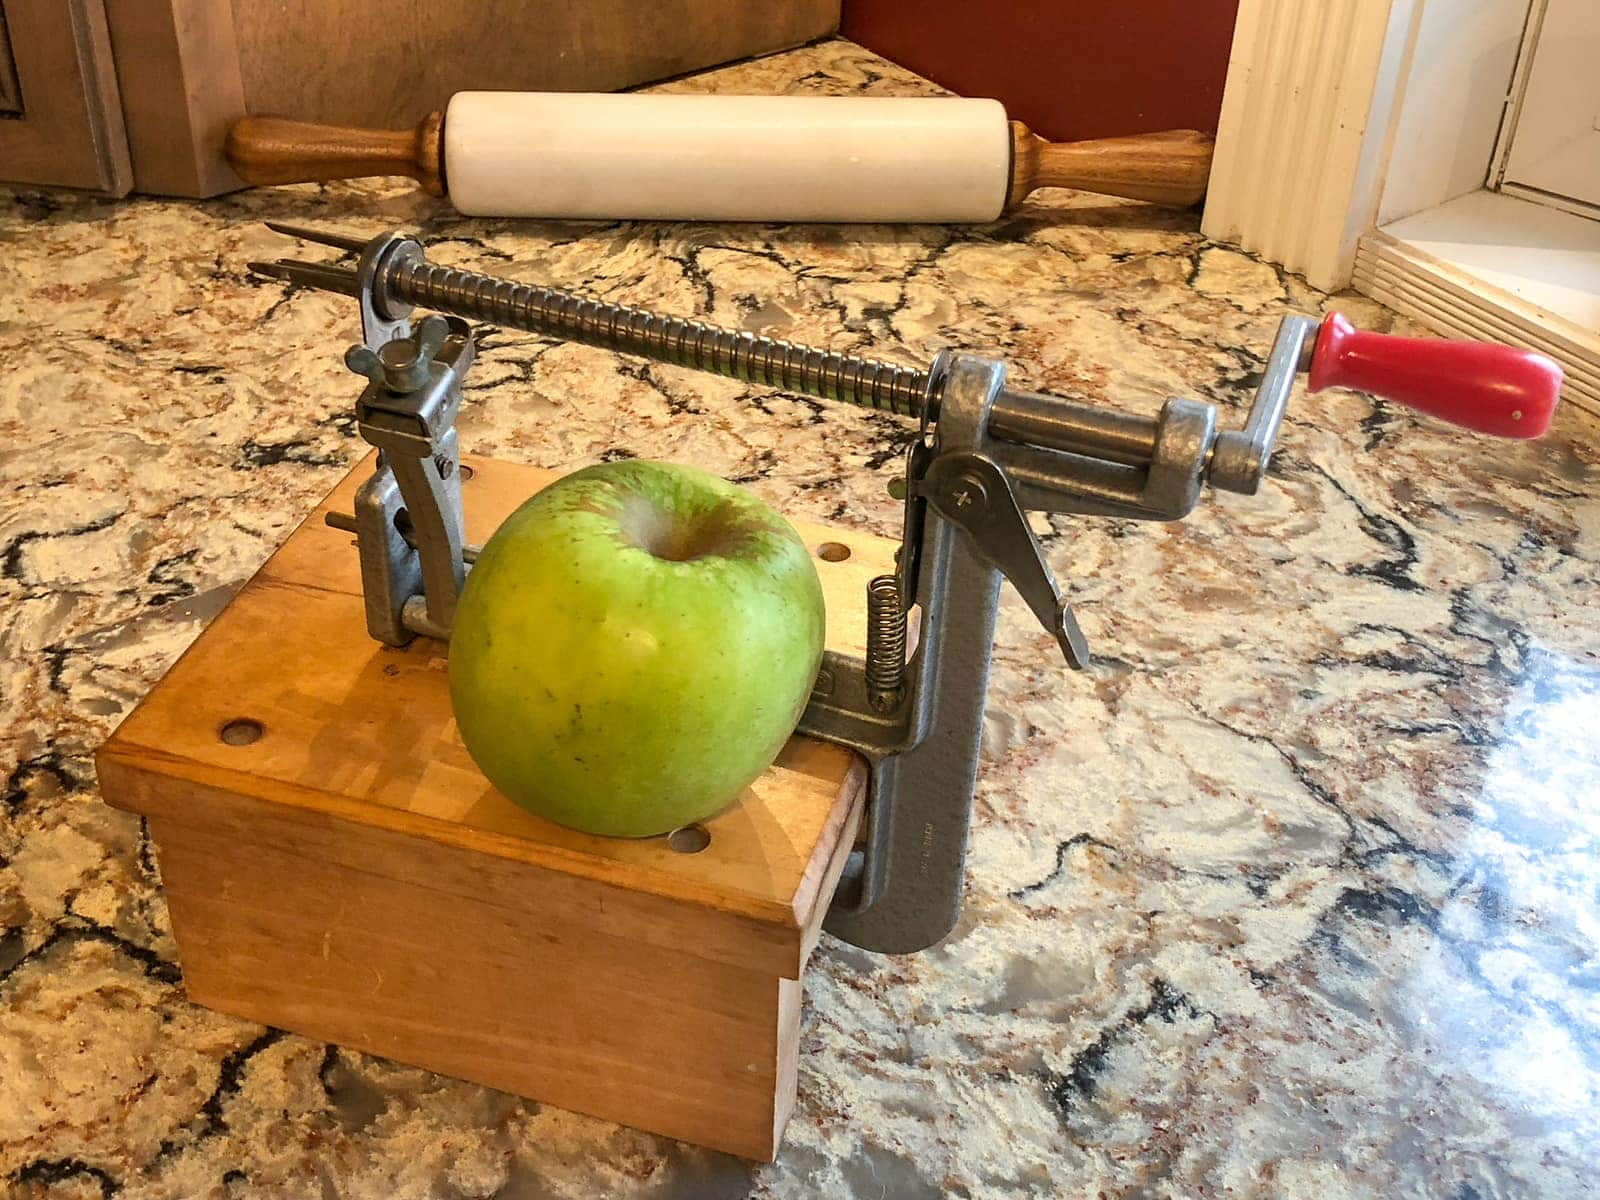 Imposing Apple Sauced Burgers Apple Sauced Burgers Salted Pepper Pampered Chef Apple Peeler Corer Pampered Chef Apple Peeler Slicer houzz-03 Pampered Chef Apple Peeler